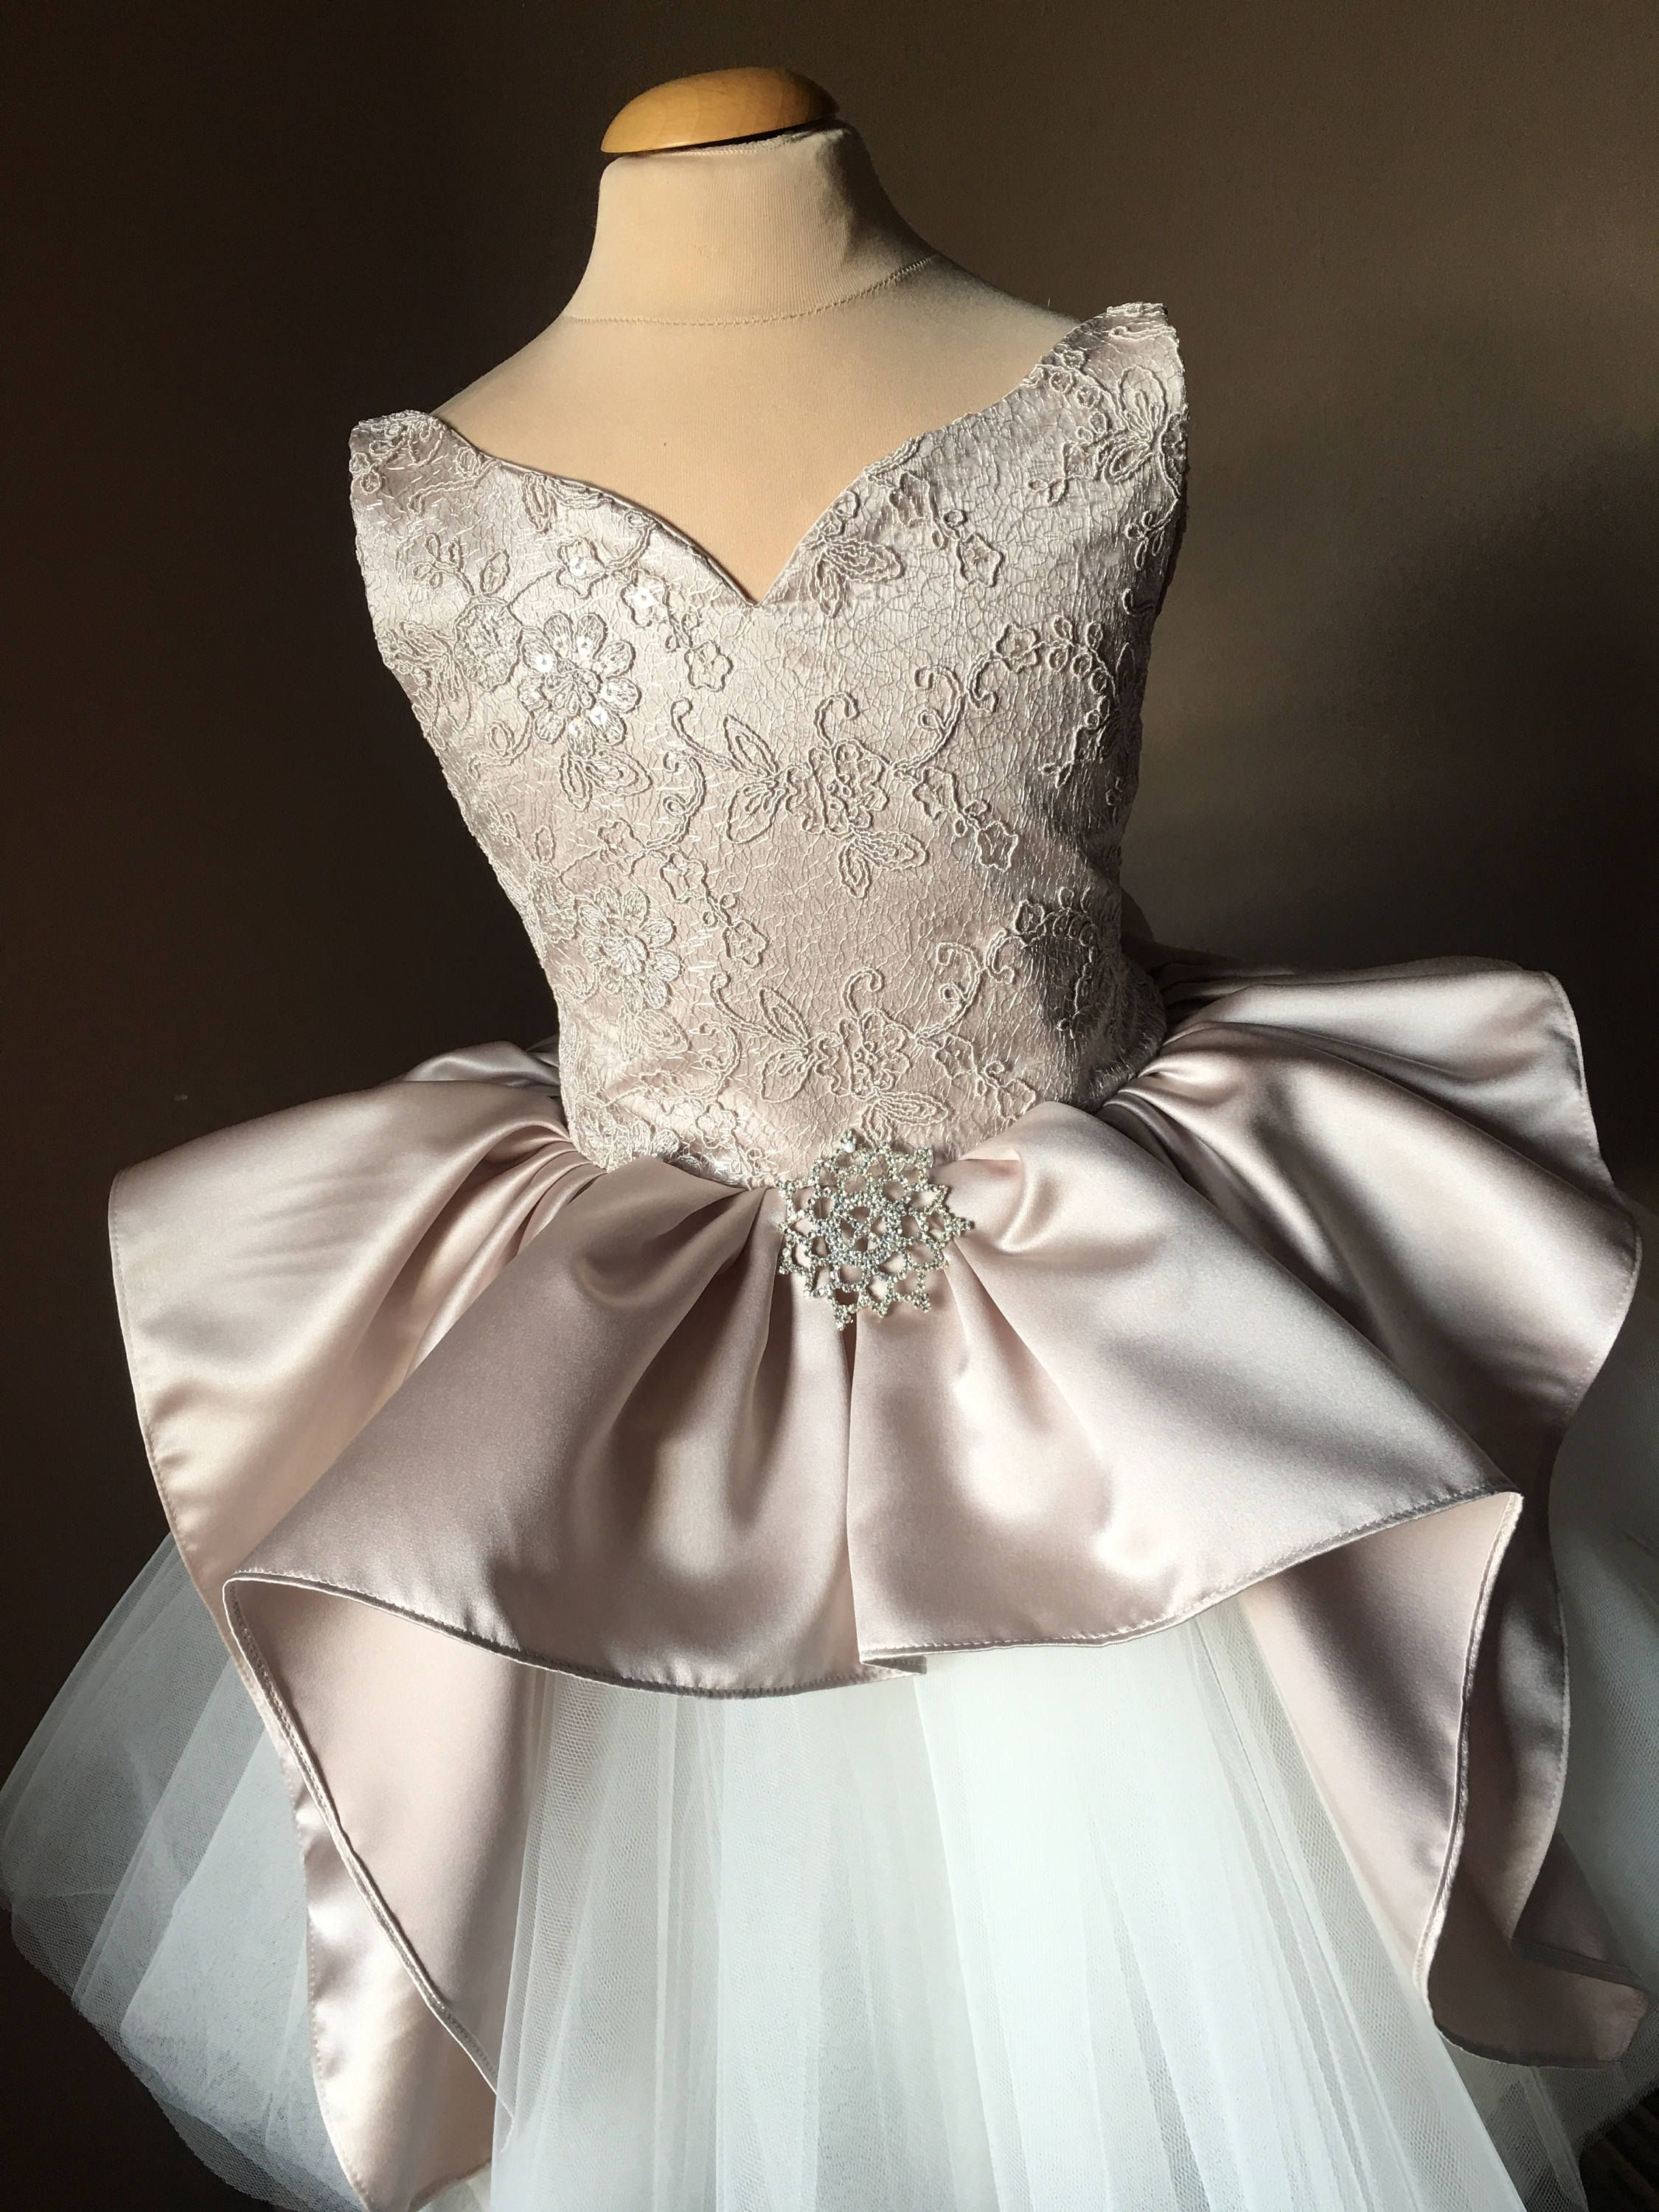 SHELLY Ivory Lace Champagne Tulle Flower Girl Dress ...  Ivory Lace Vintage Flower Girl Dress